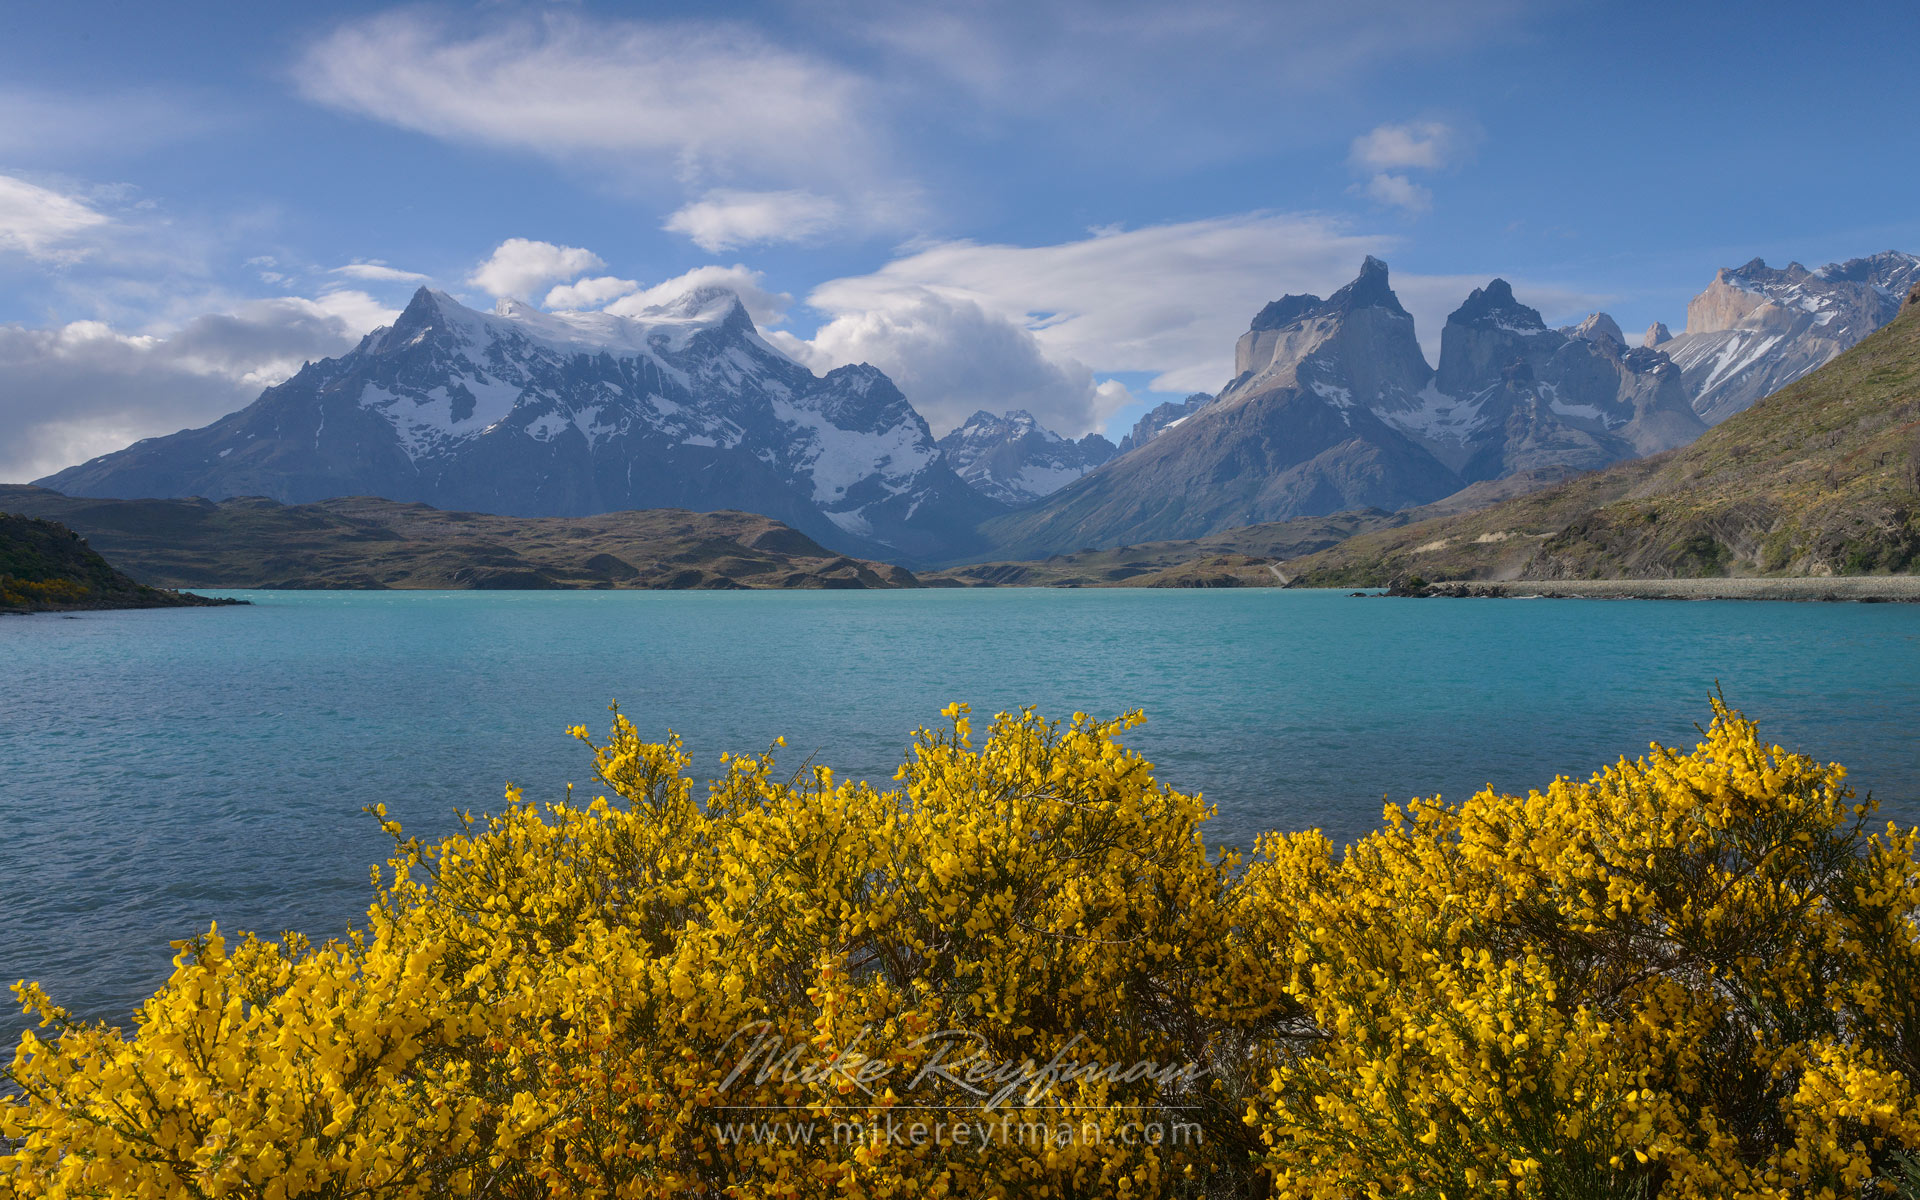 Yellow Retama broom bushes and turquoise waters of Lago Pehoe with Cerro Paine Grande and Cuernos del Paine on the background. Torres del Paine National Park, Patagonia, Chile.  - Torres-Del-Paine-National-Park-Patagonia-Chile - Mike Reyfman Photography